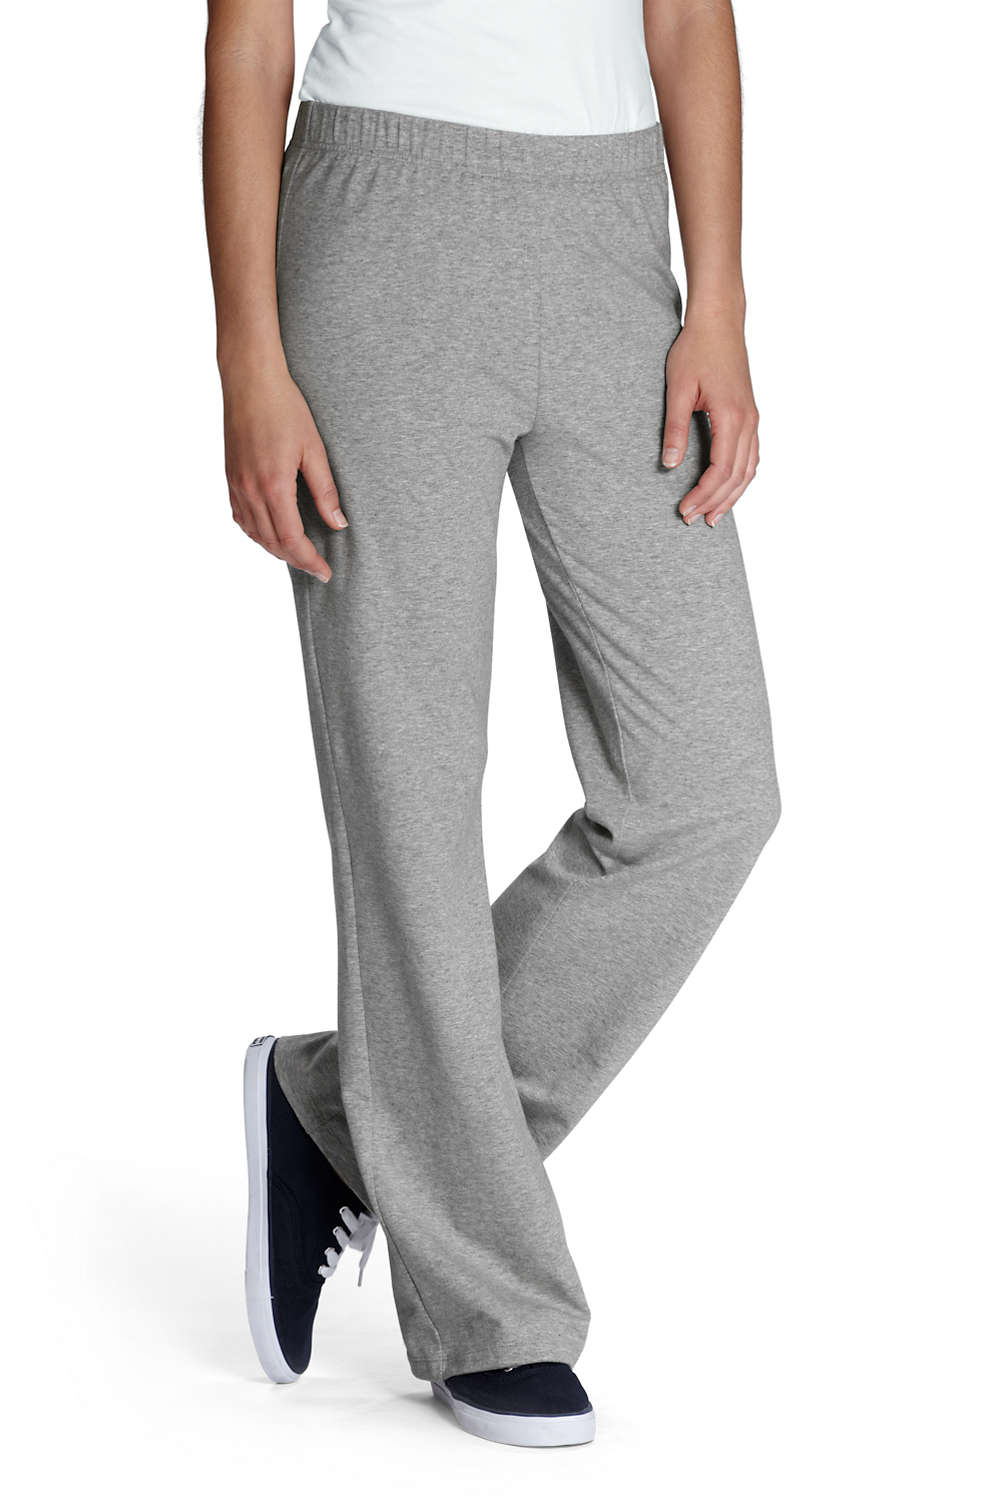 yoga pants from lands end